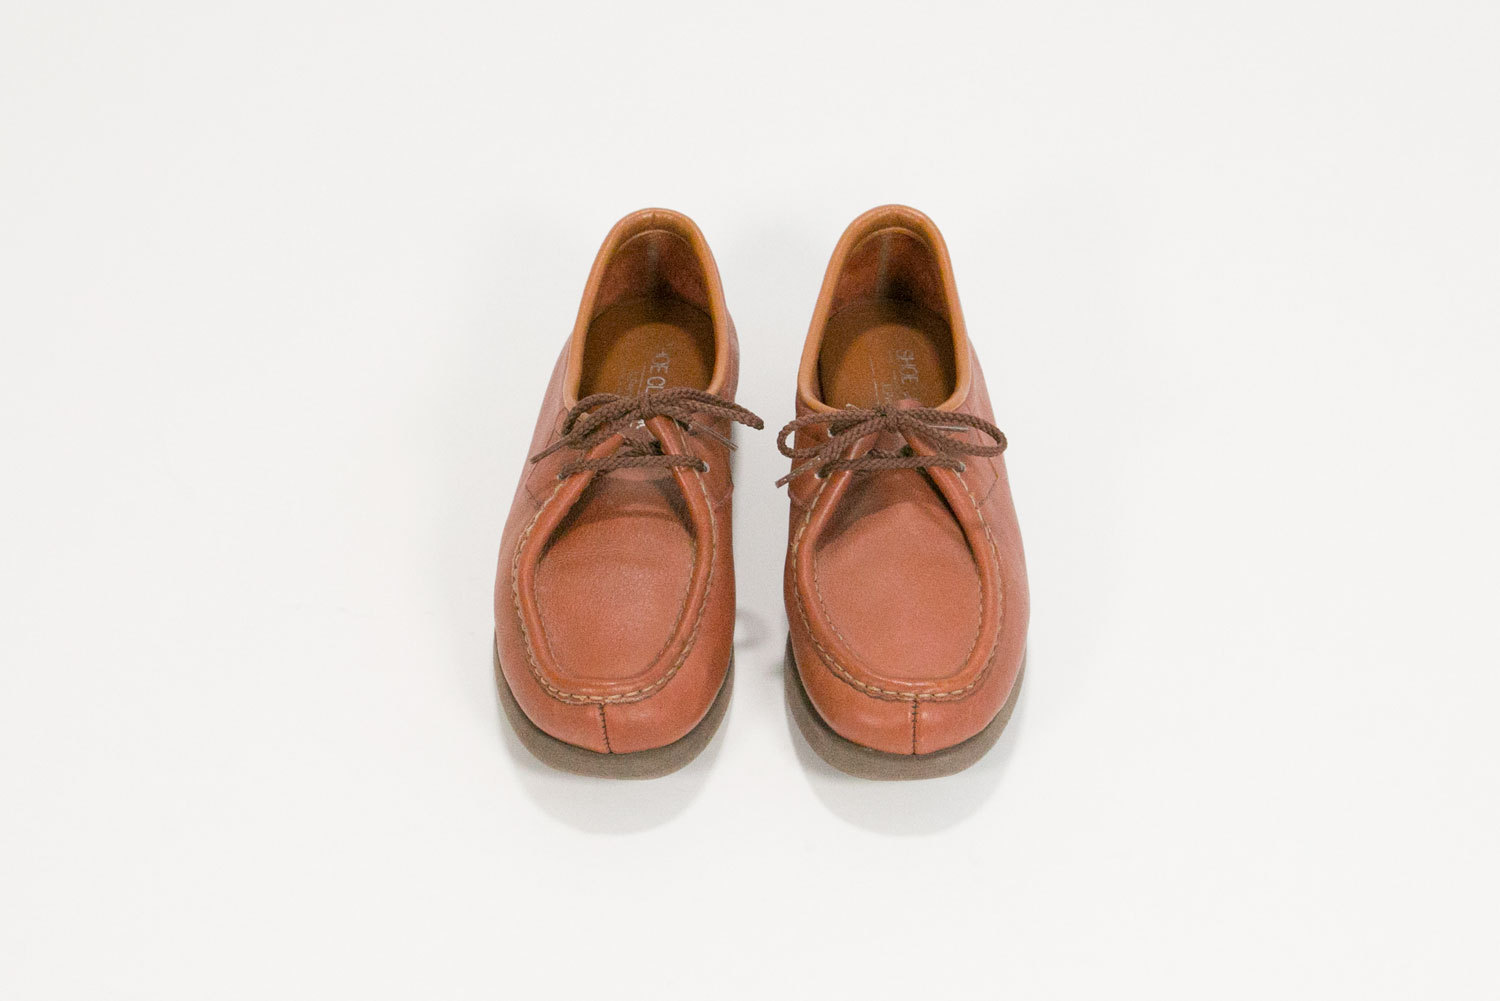 Vintage 1960's / 1970's Women's Leather Loafers // Women's Size 7 - 7.5 // JCPenney Shoe Classics